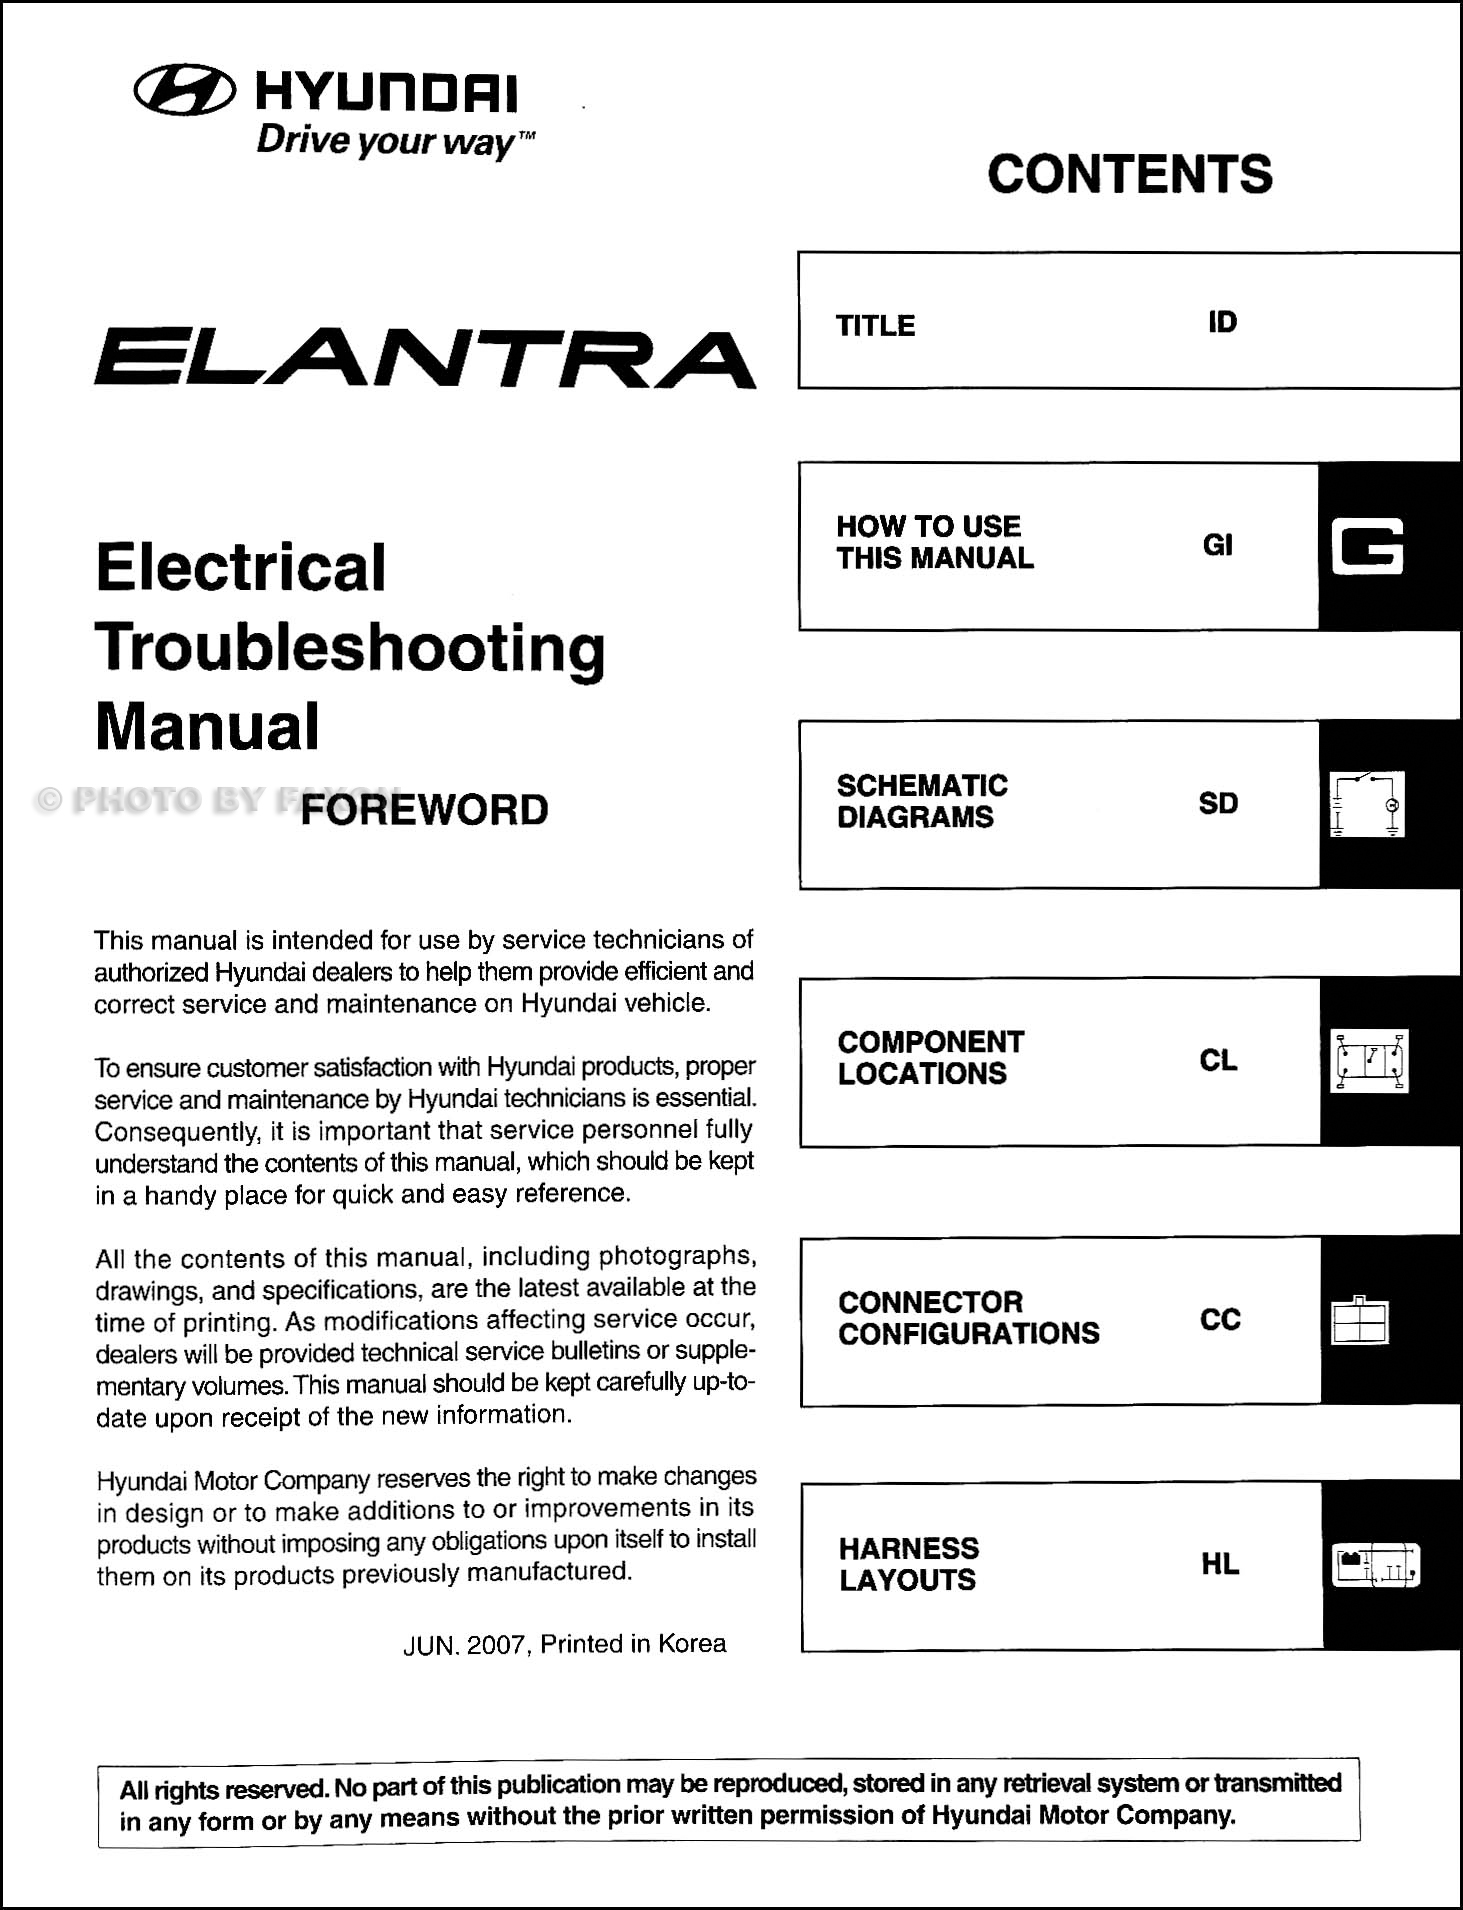 hight resolution of 2008 hyundai elantra electrical troubleshooting manual